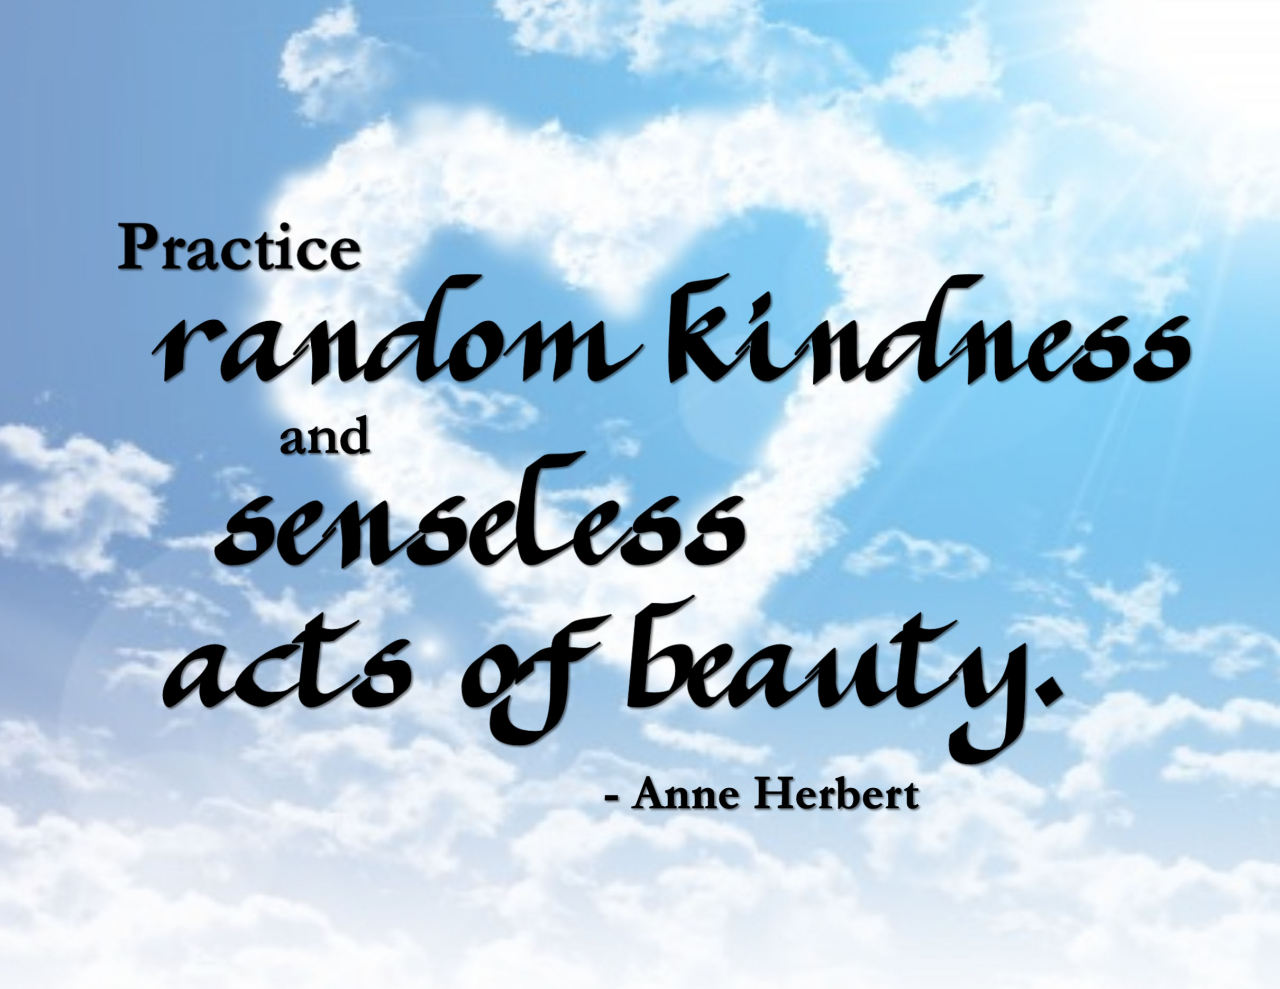 quotes about kindness and respect. favorite kindness quotes,